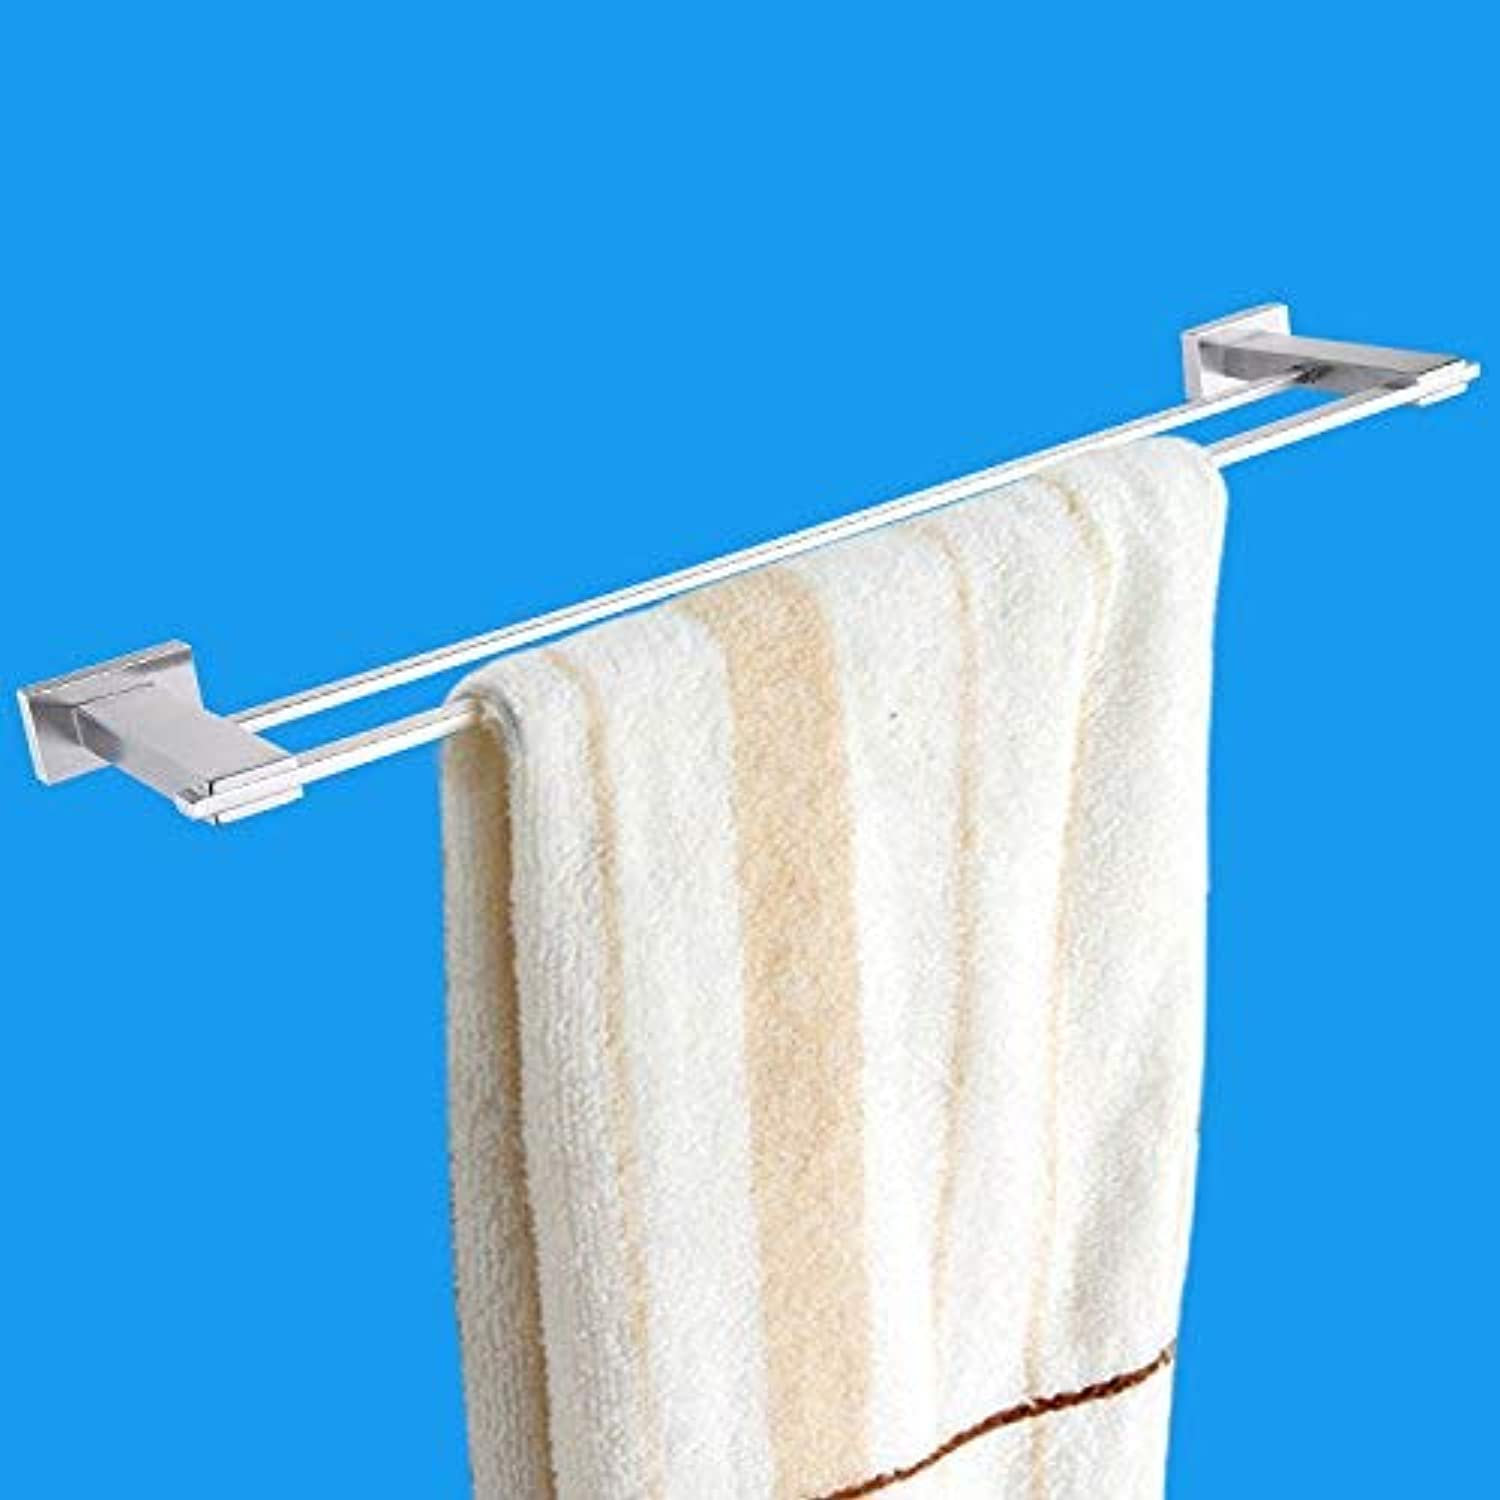 Elegant Towel Stand Quality 304 Stainless Steel, Durable Double Rod Drawing Towel Rod, Bathroom Towel Rack